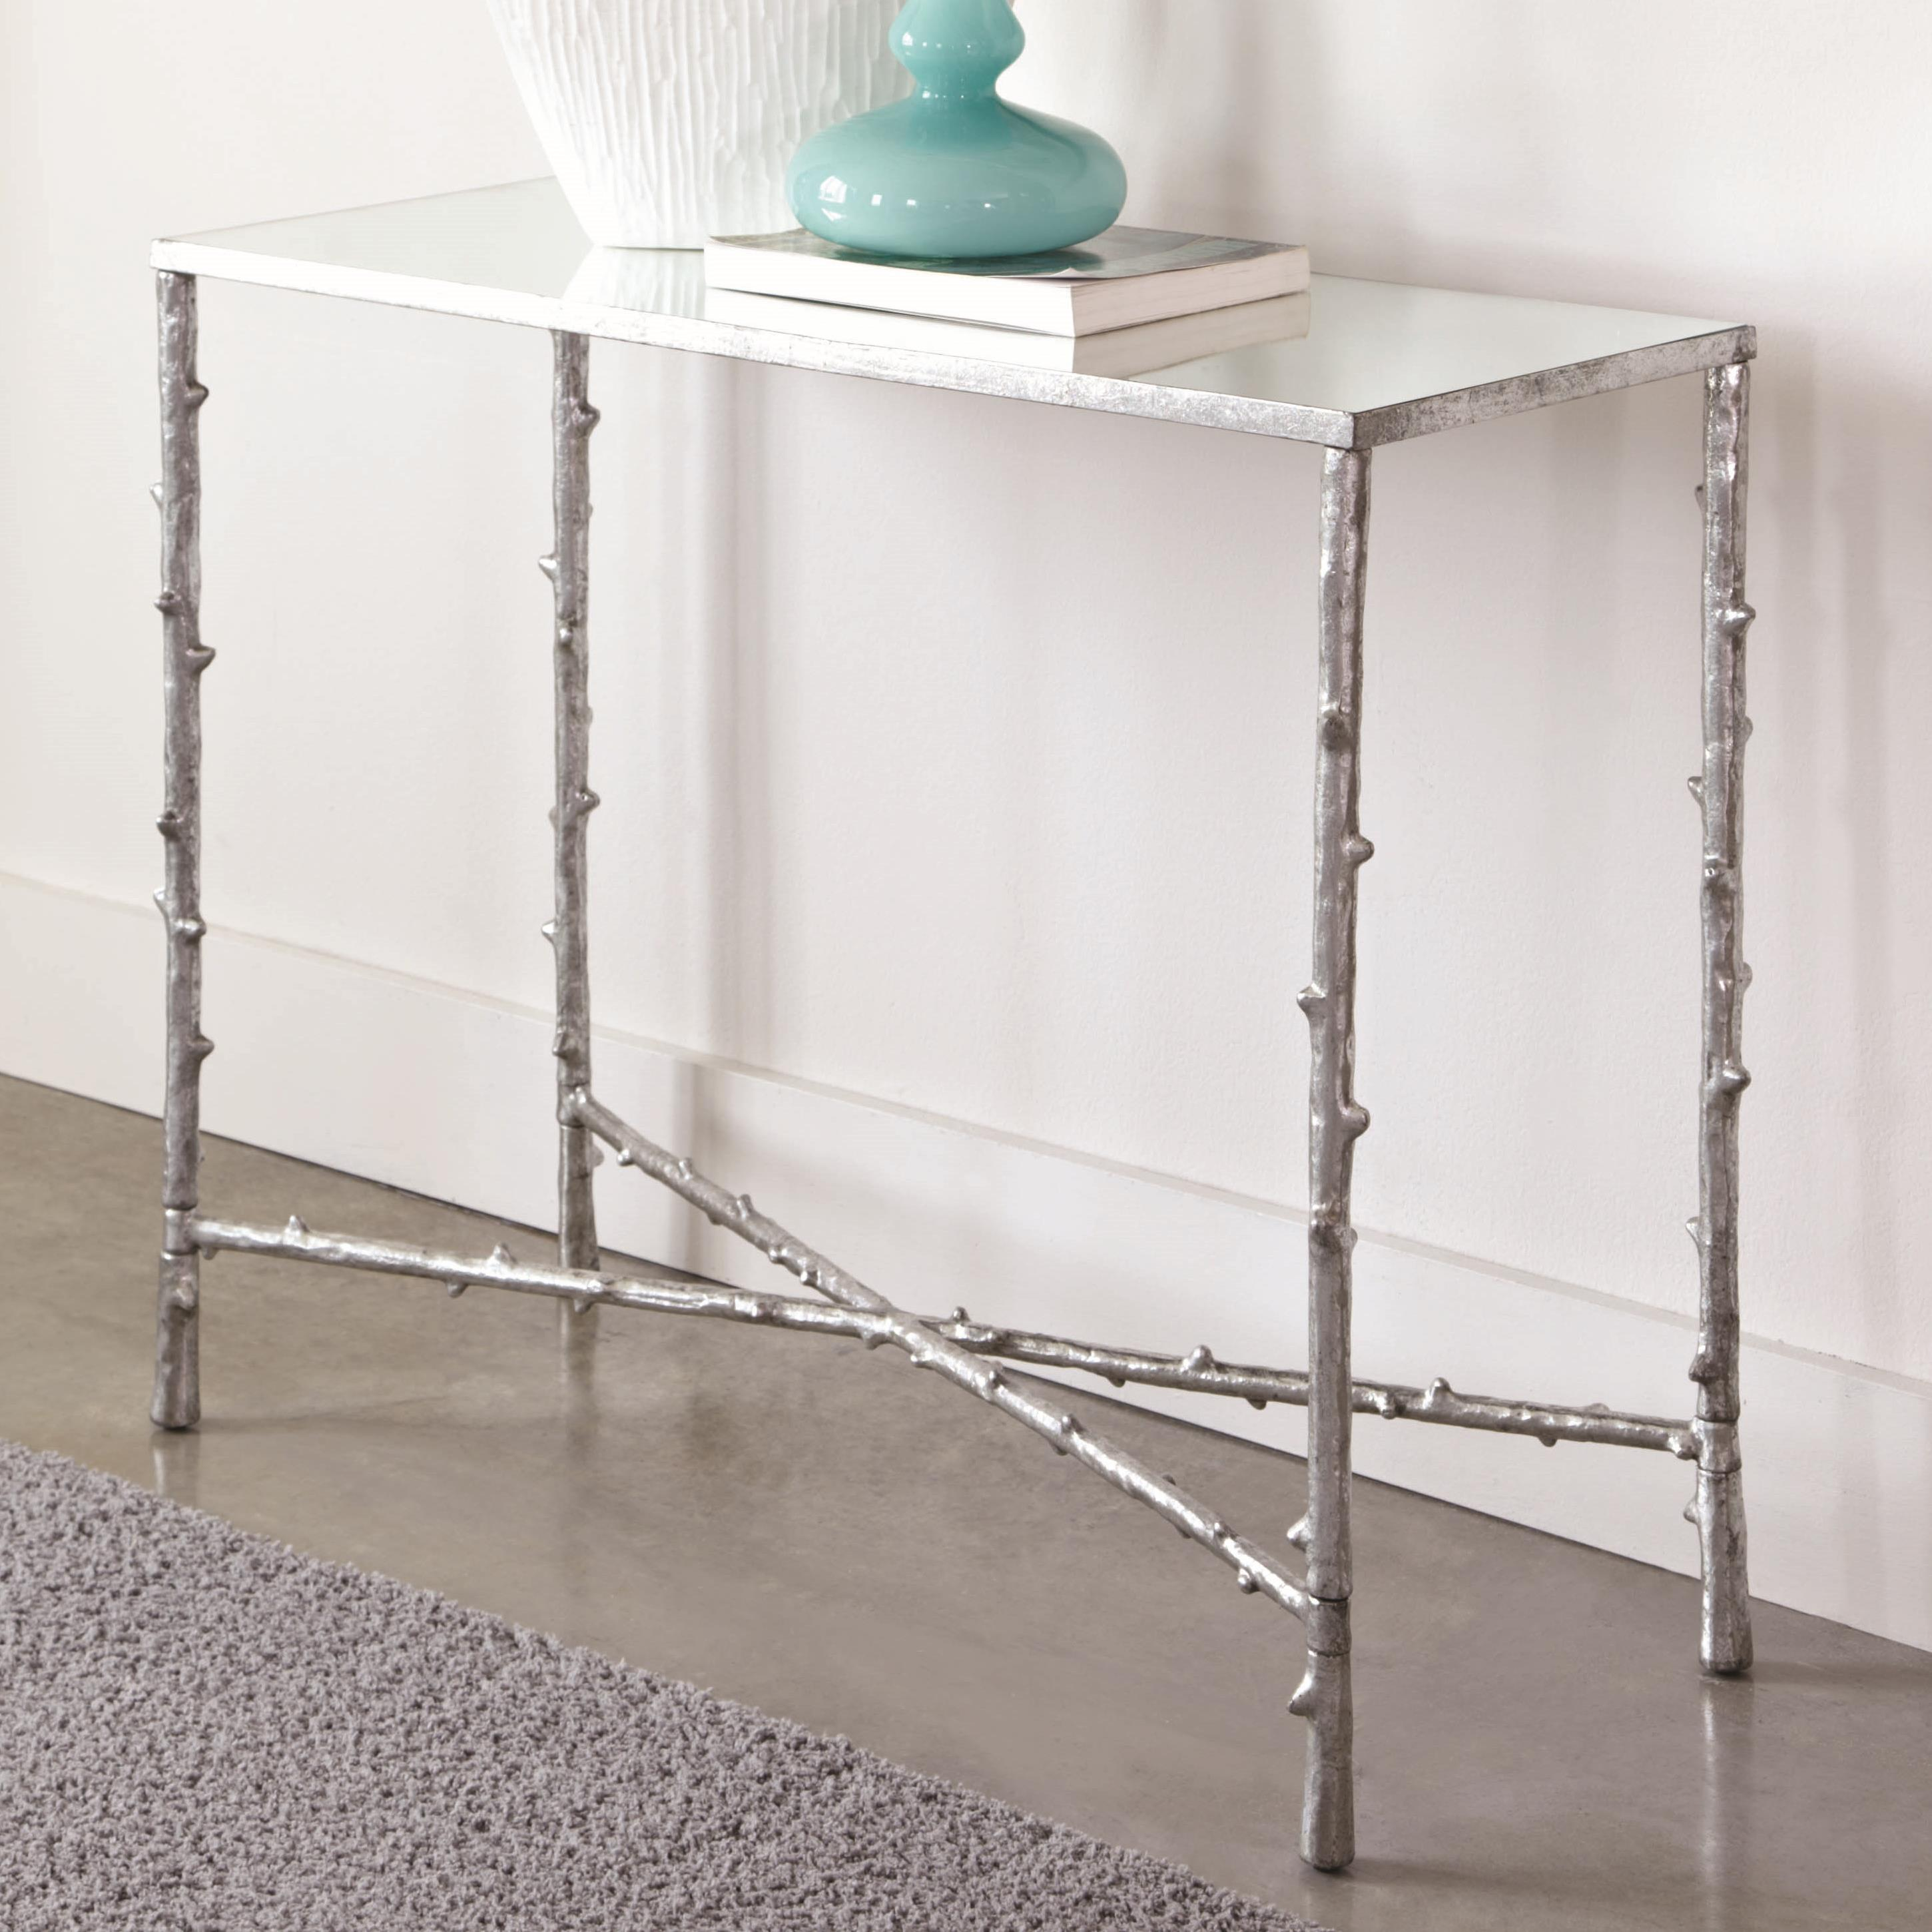 Coaster Accent Tables Console Table - Item Number: 950359